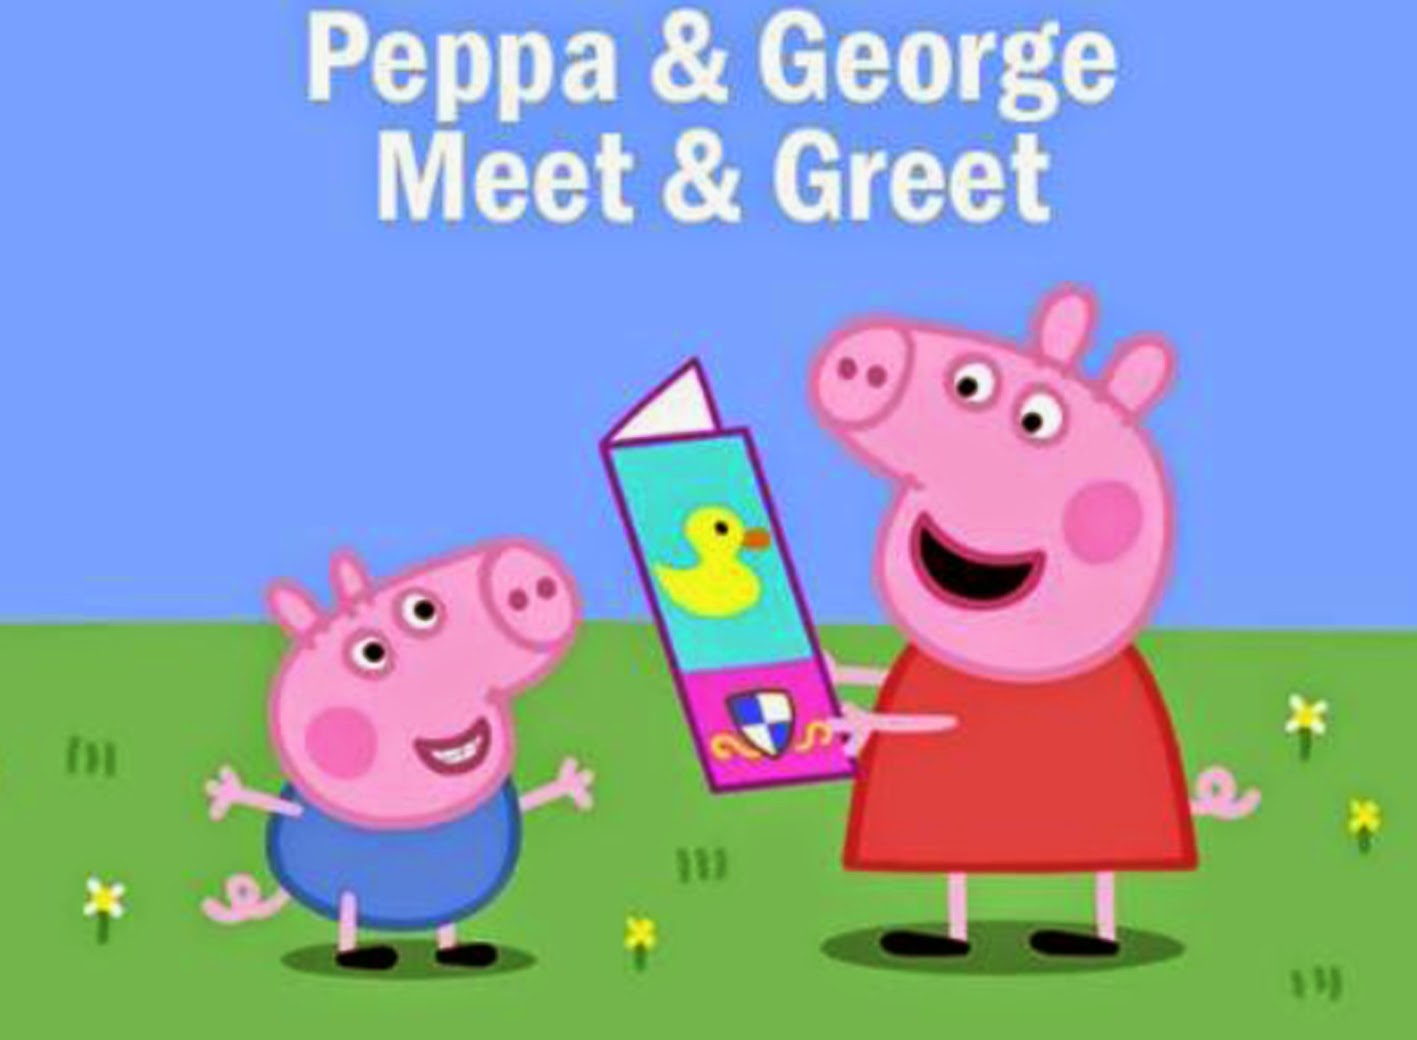 Cartoon Network And Peppa Pig Fans Are In For A Treat This March